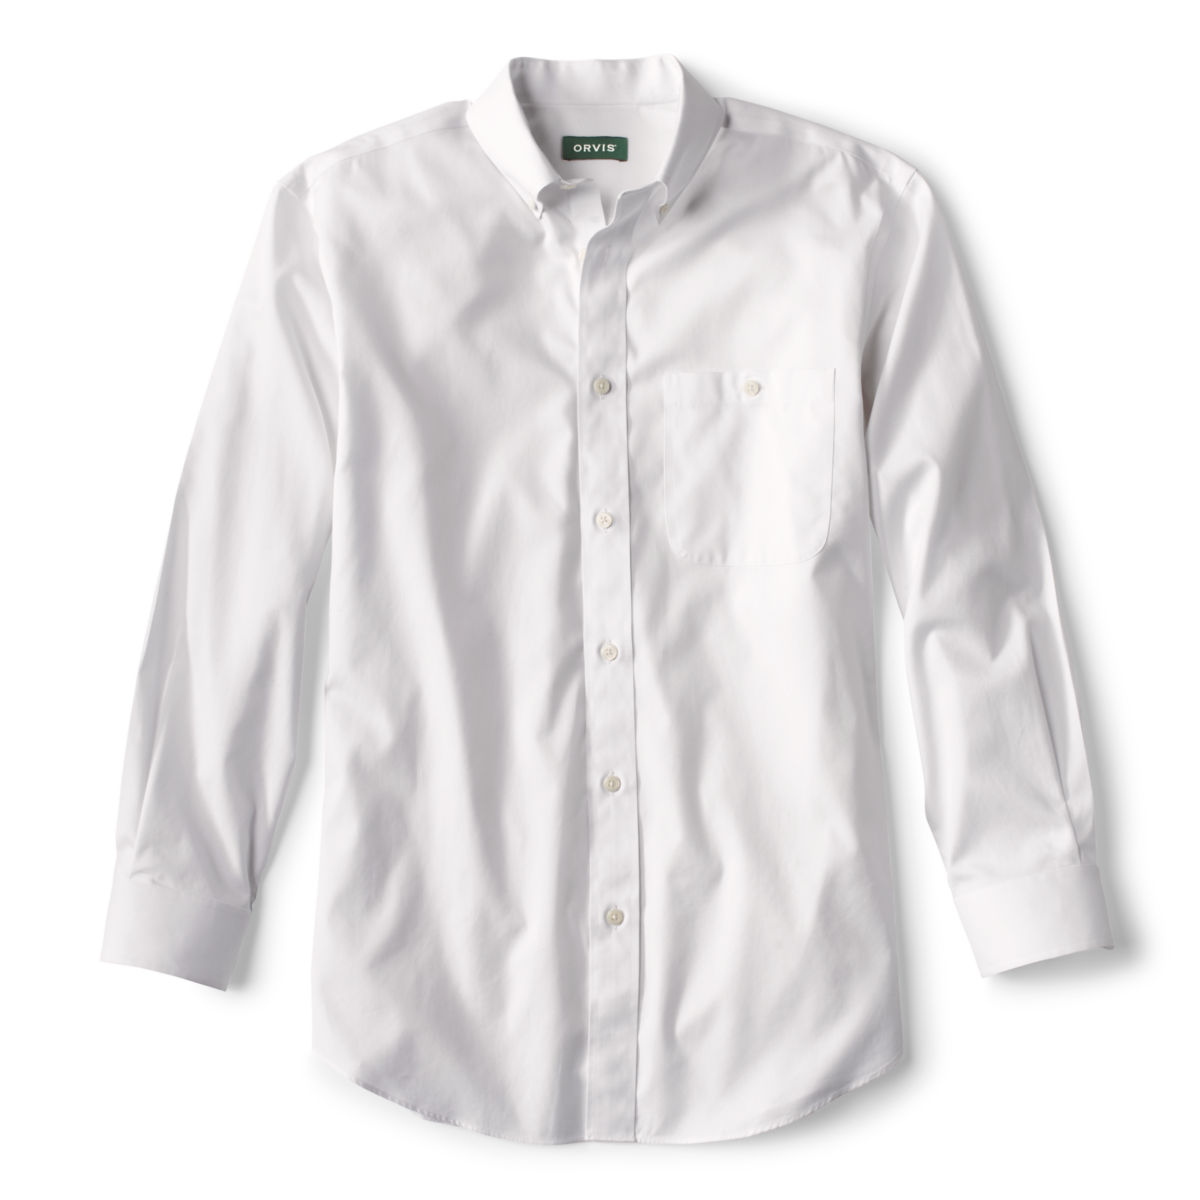 Pure Cotton Wrinkle-Free Pinpoint Oxford Long-Sleeved Shirt - WHITEimage number 0